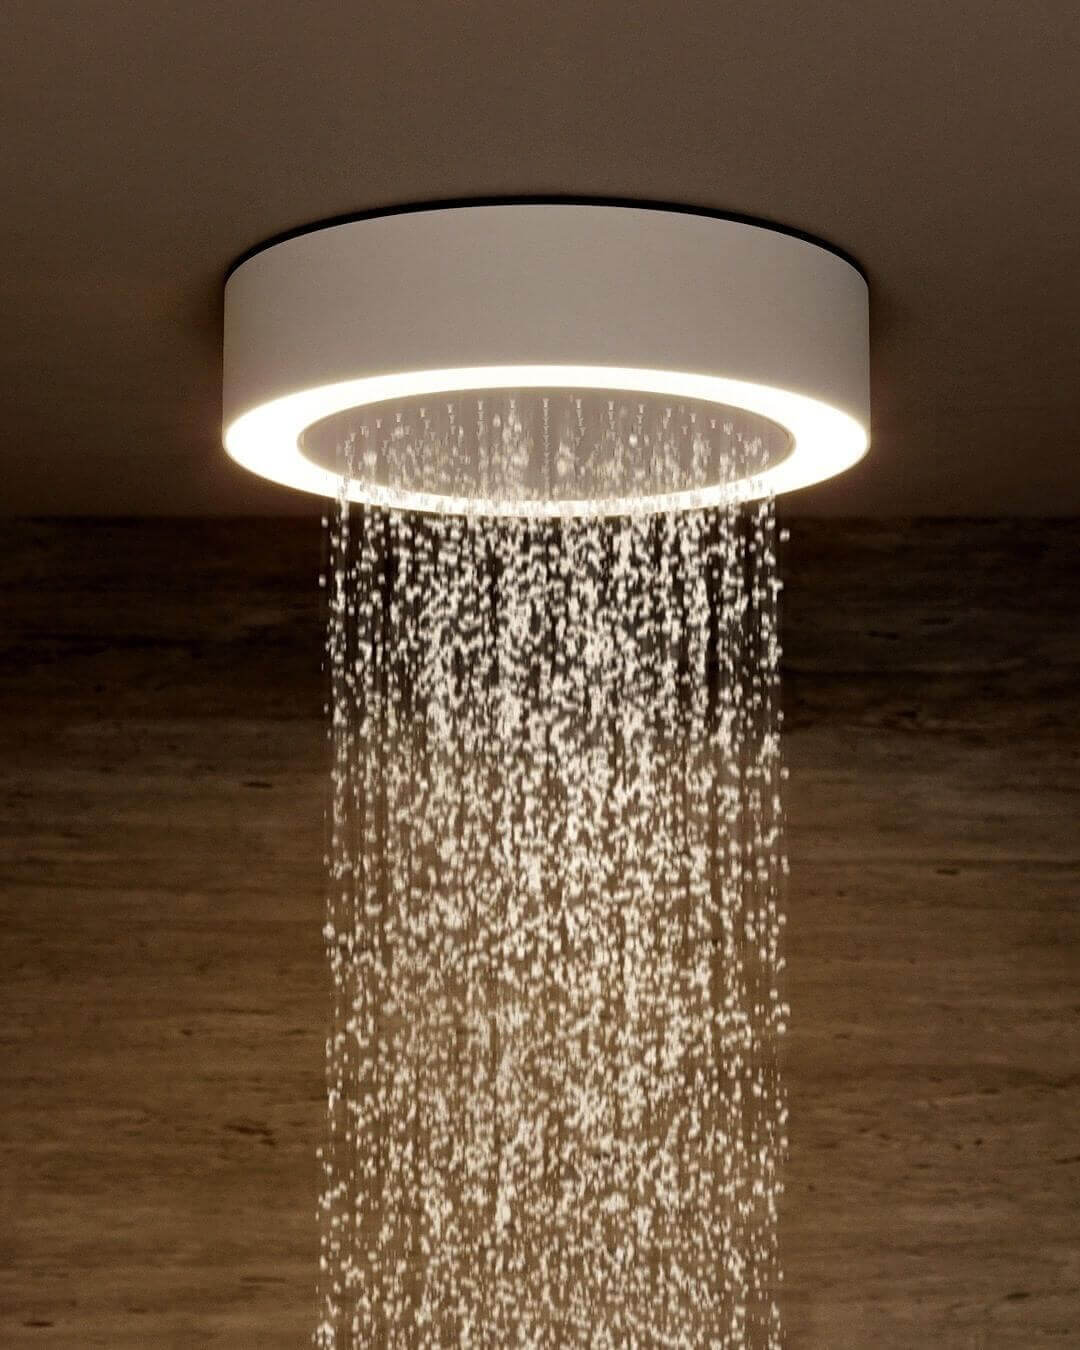 Do Shower Lights Need to be GFCI Protected?